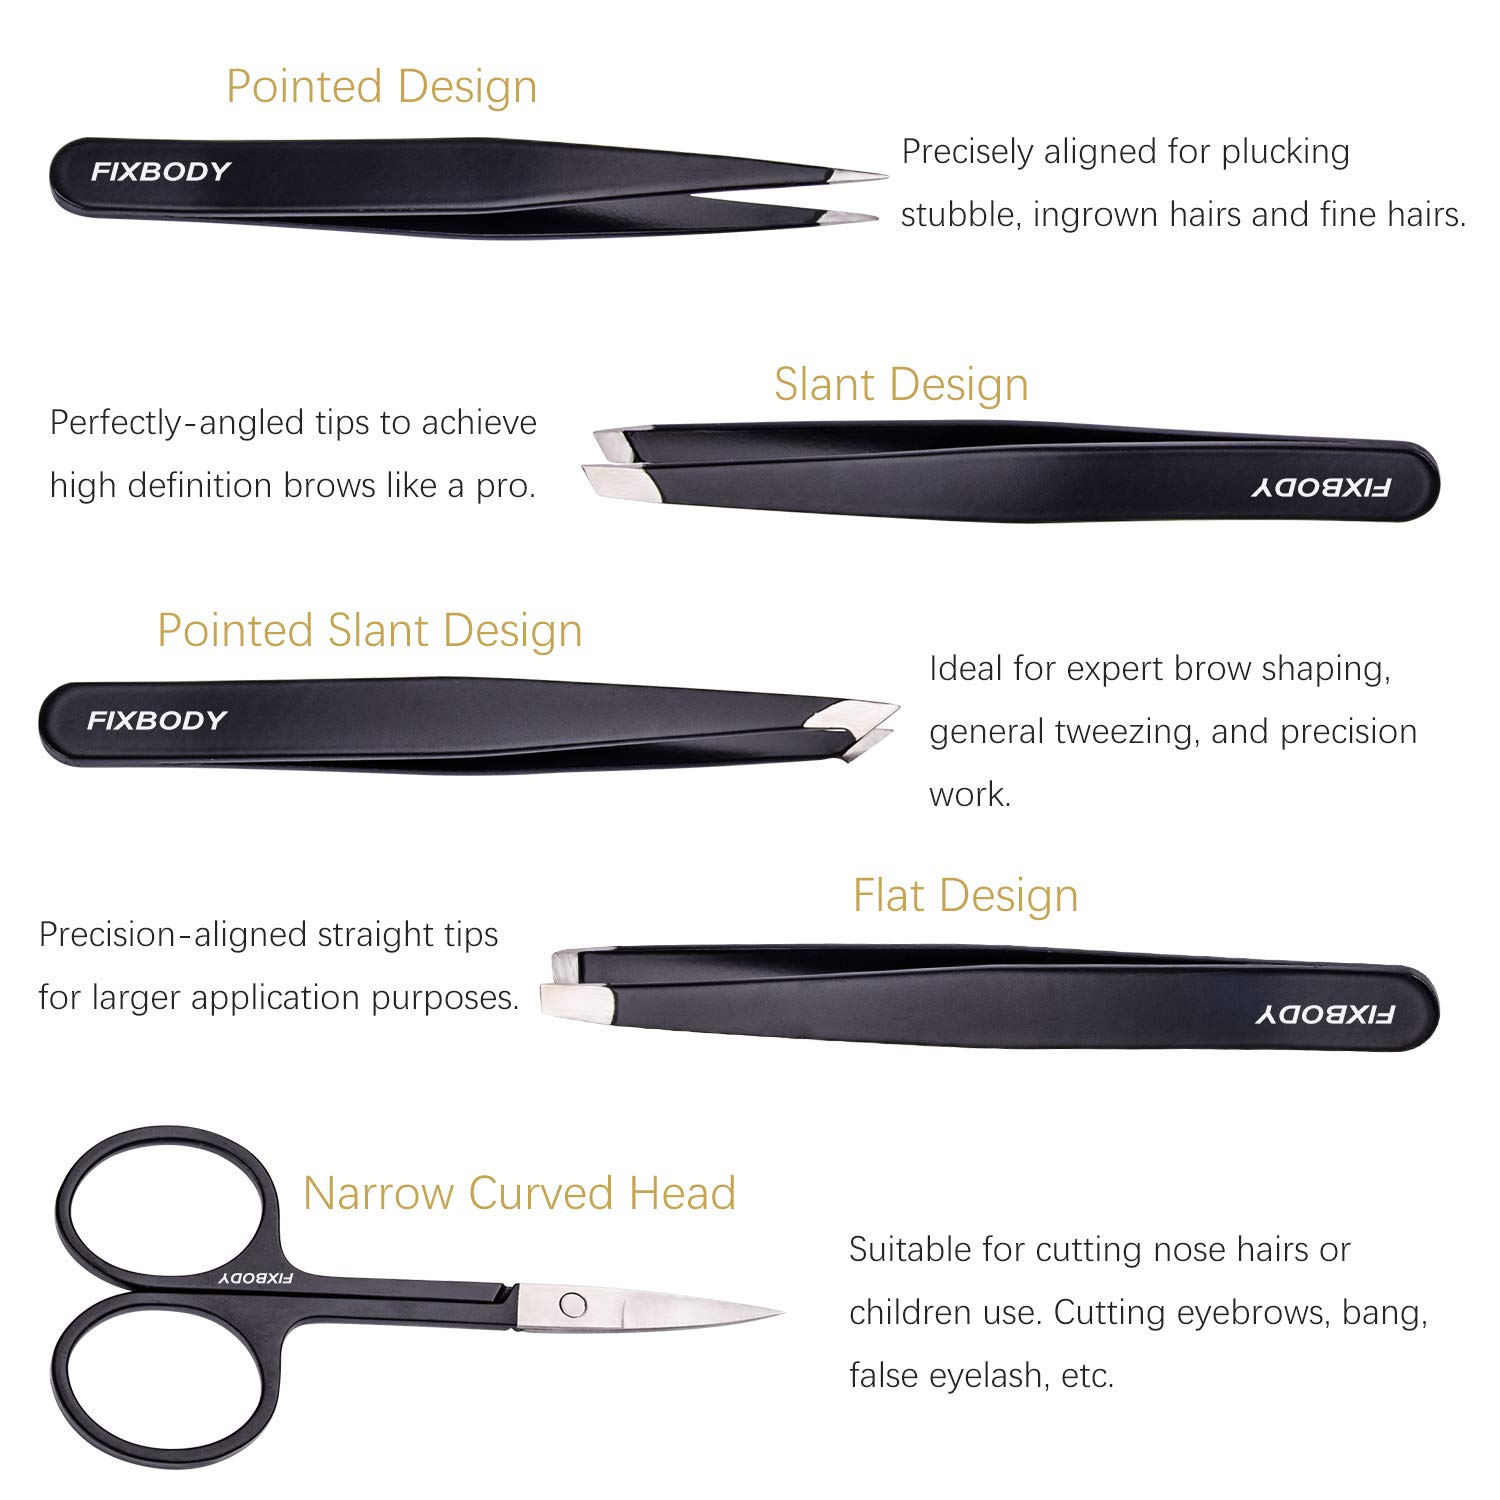 FIXBODY Tweezers Set 5-Piece - Professional Stainless Steel Tweezers with Curved Scissors, Best Precision Tweezer for Eyebrows, Splinter & Ingrown Hair Removal with Leather Travel Case